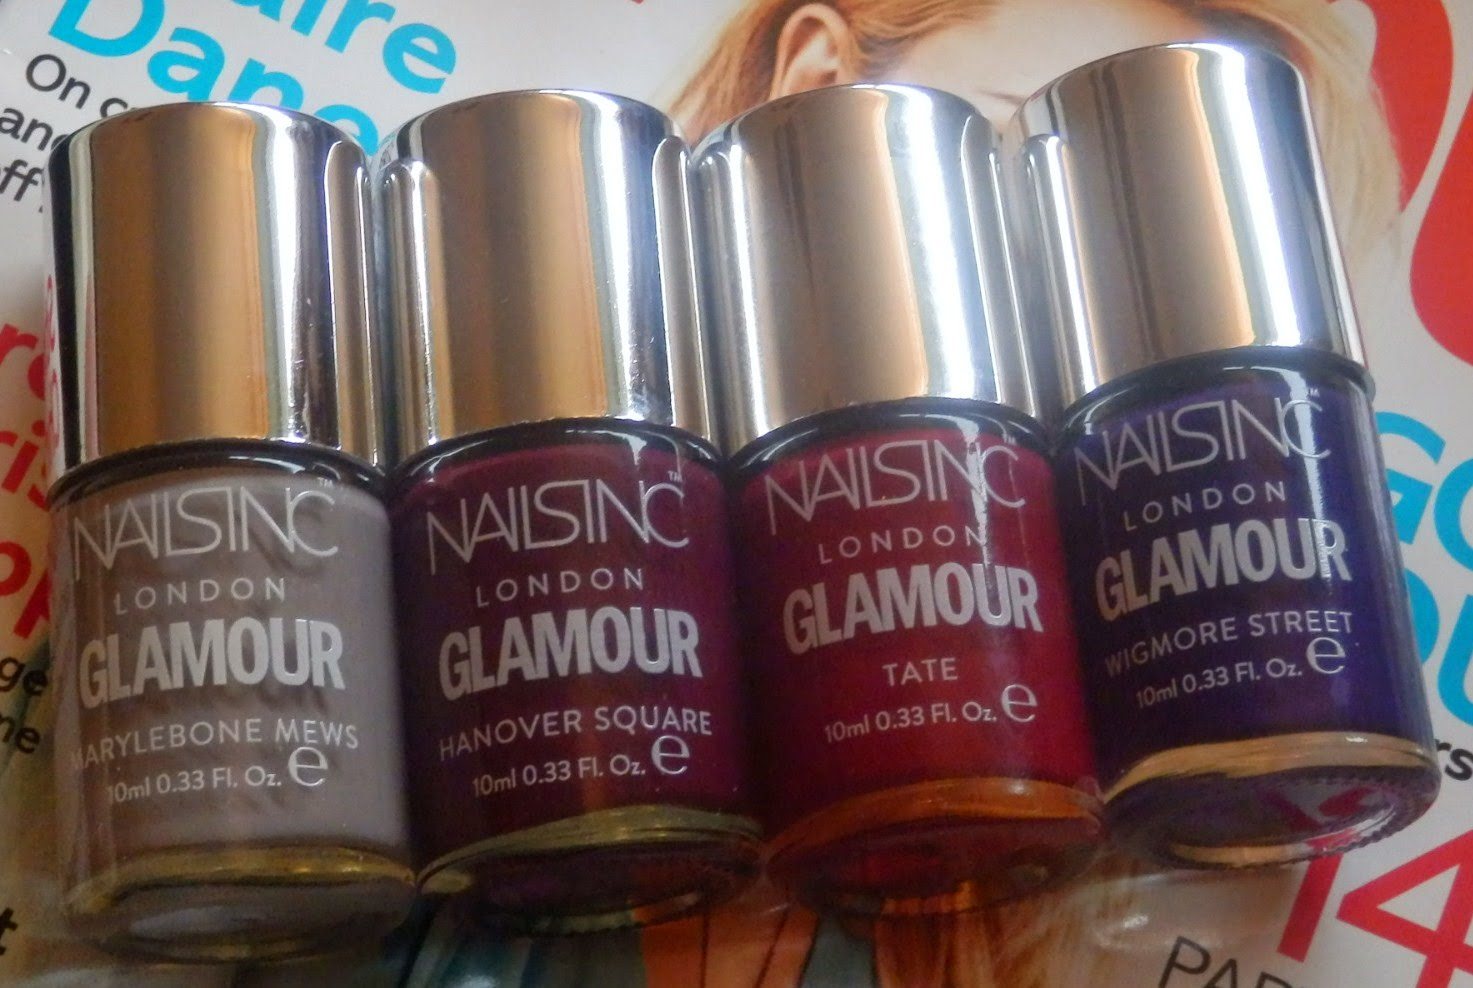 Glamour Magazine Nails Inc Freebies - December 2014